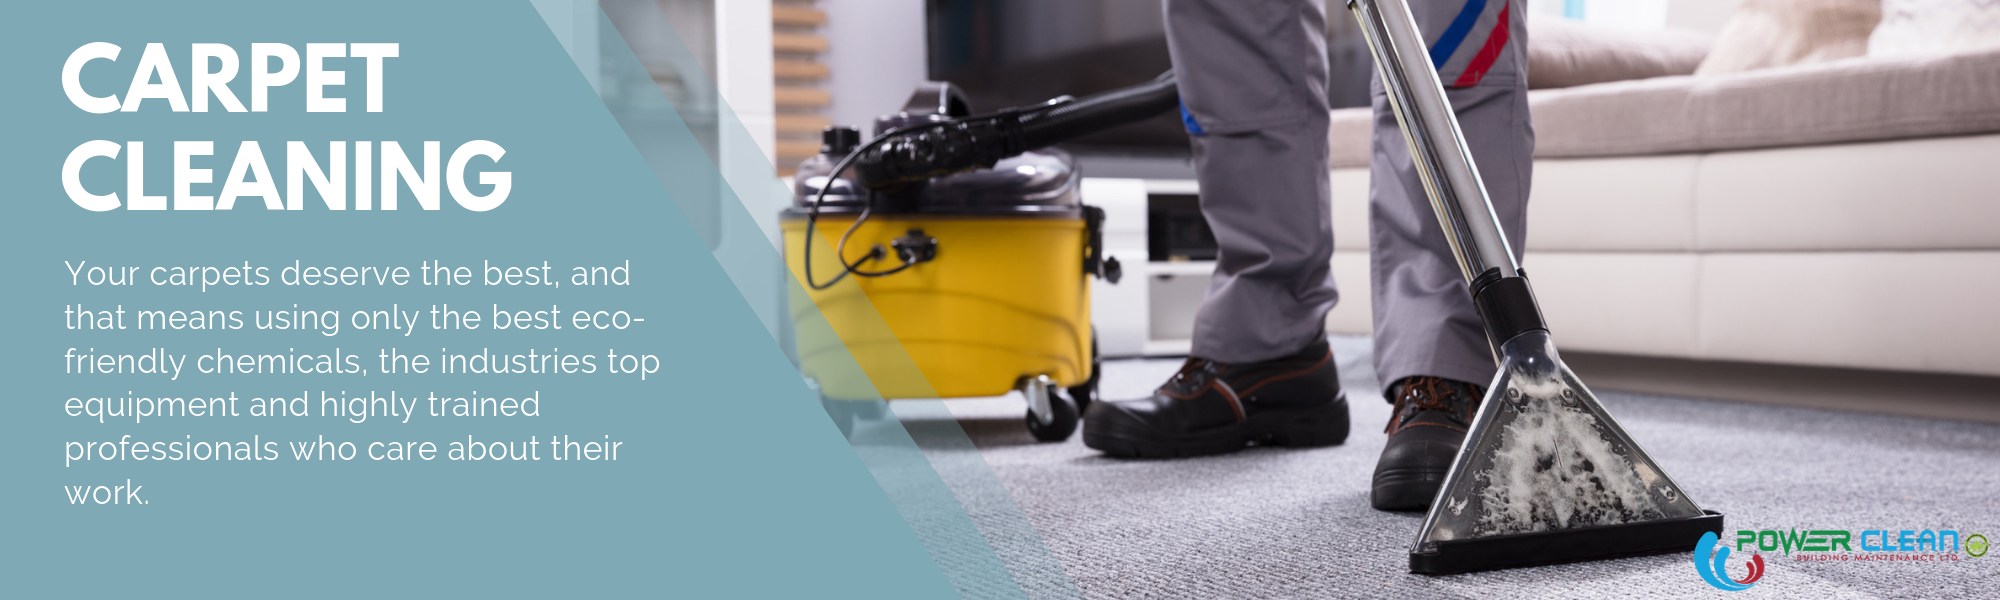 Carpet cleaning victoria